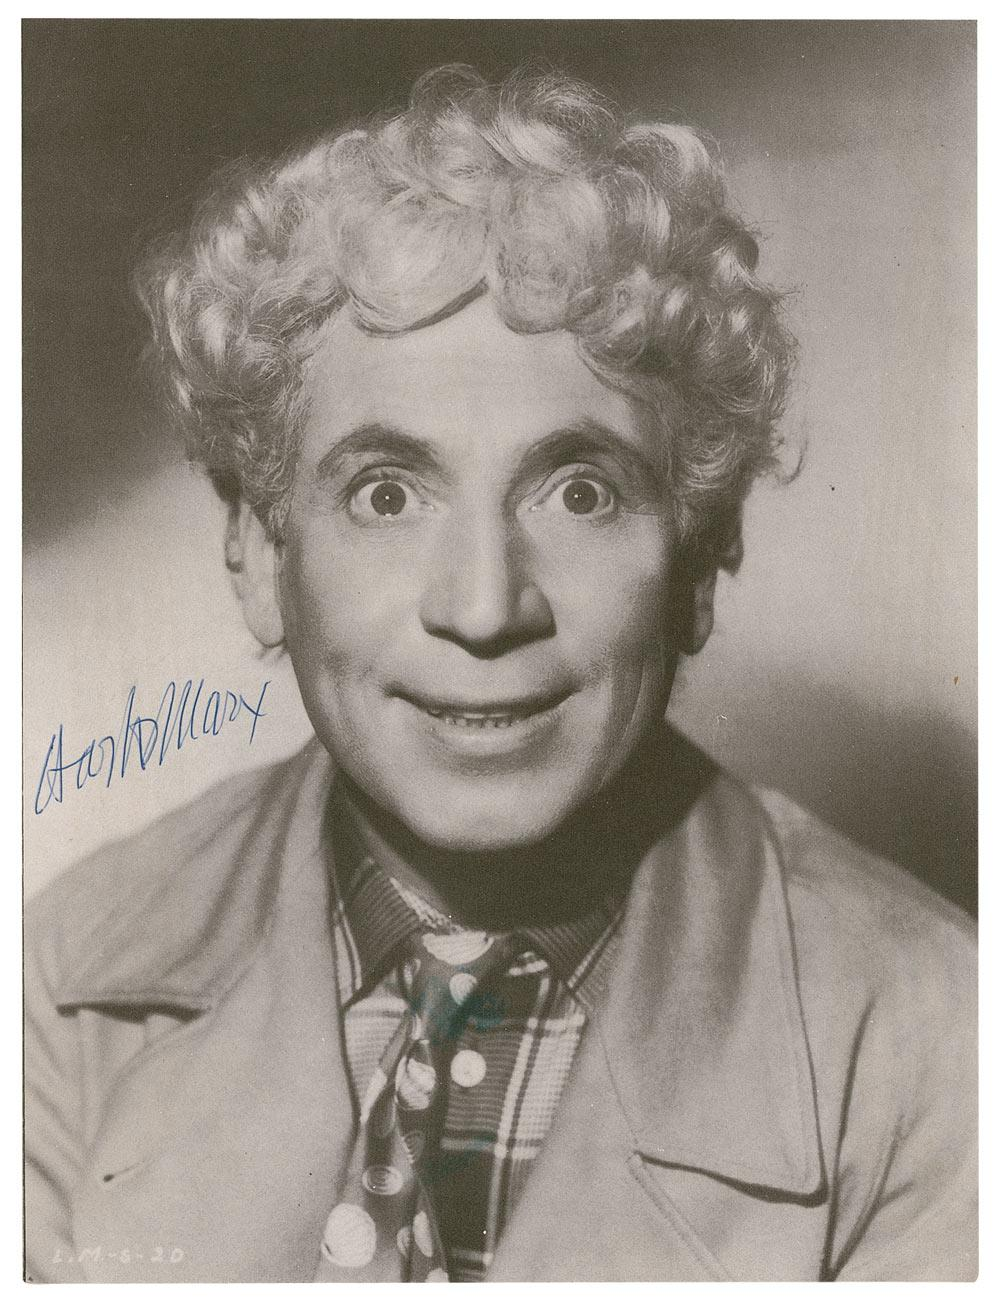 harpo marx imagesharpo marx guardian angels, harpo marx interview, harpo marx piano, harpo marx, harpo marx voice, harpo marx and lucille ball, harpo marx speaks, harpo marx harp, harpo marx or carrot top, harpo marx youtube, harpo marx quotes, harpo marx images, harpo marx i love lucy, harpo marx estate, harpo marx costume, harpo marx horn, harpo marx biography, harpo marx brothers, harpo marx gookie, harpo marx wife